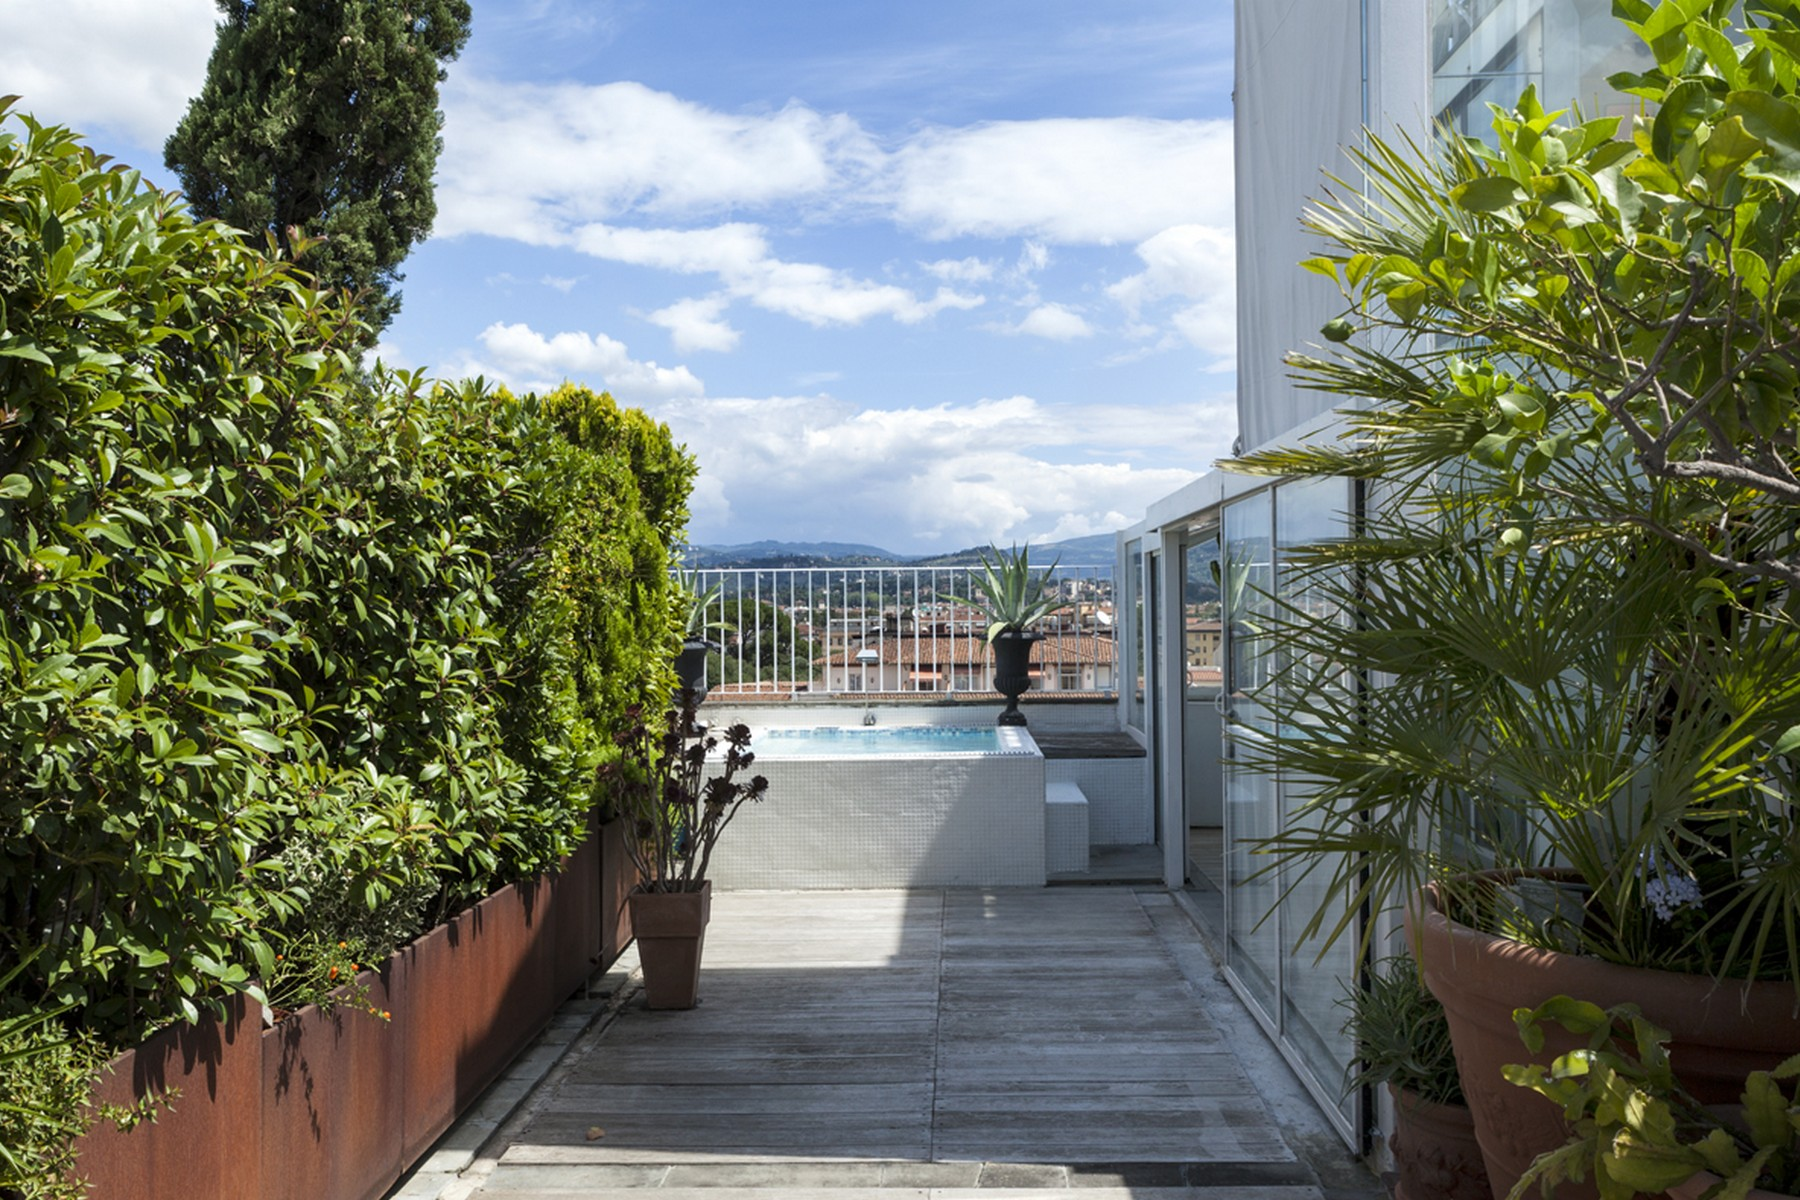 Additional photo for property listing at Stunning penthouse with pool and views over Florence Via Solferino Firenze, Florence 50123 Italie